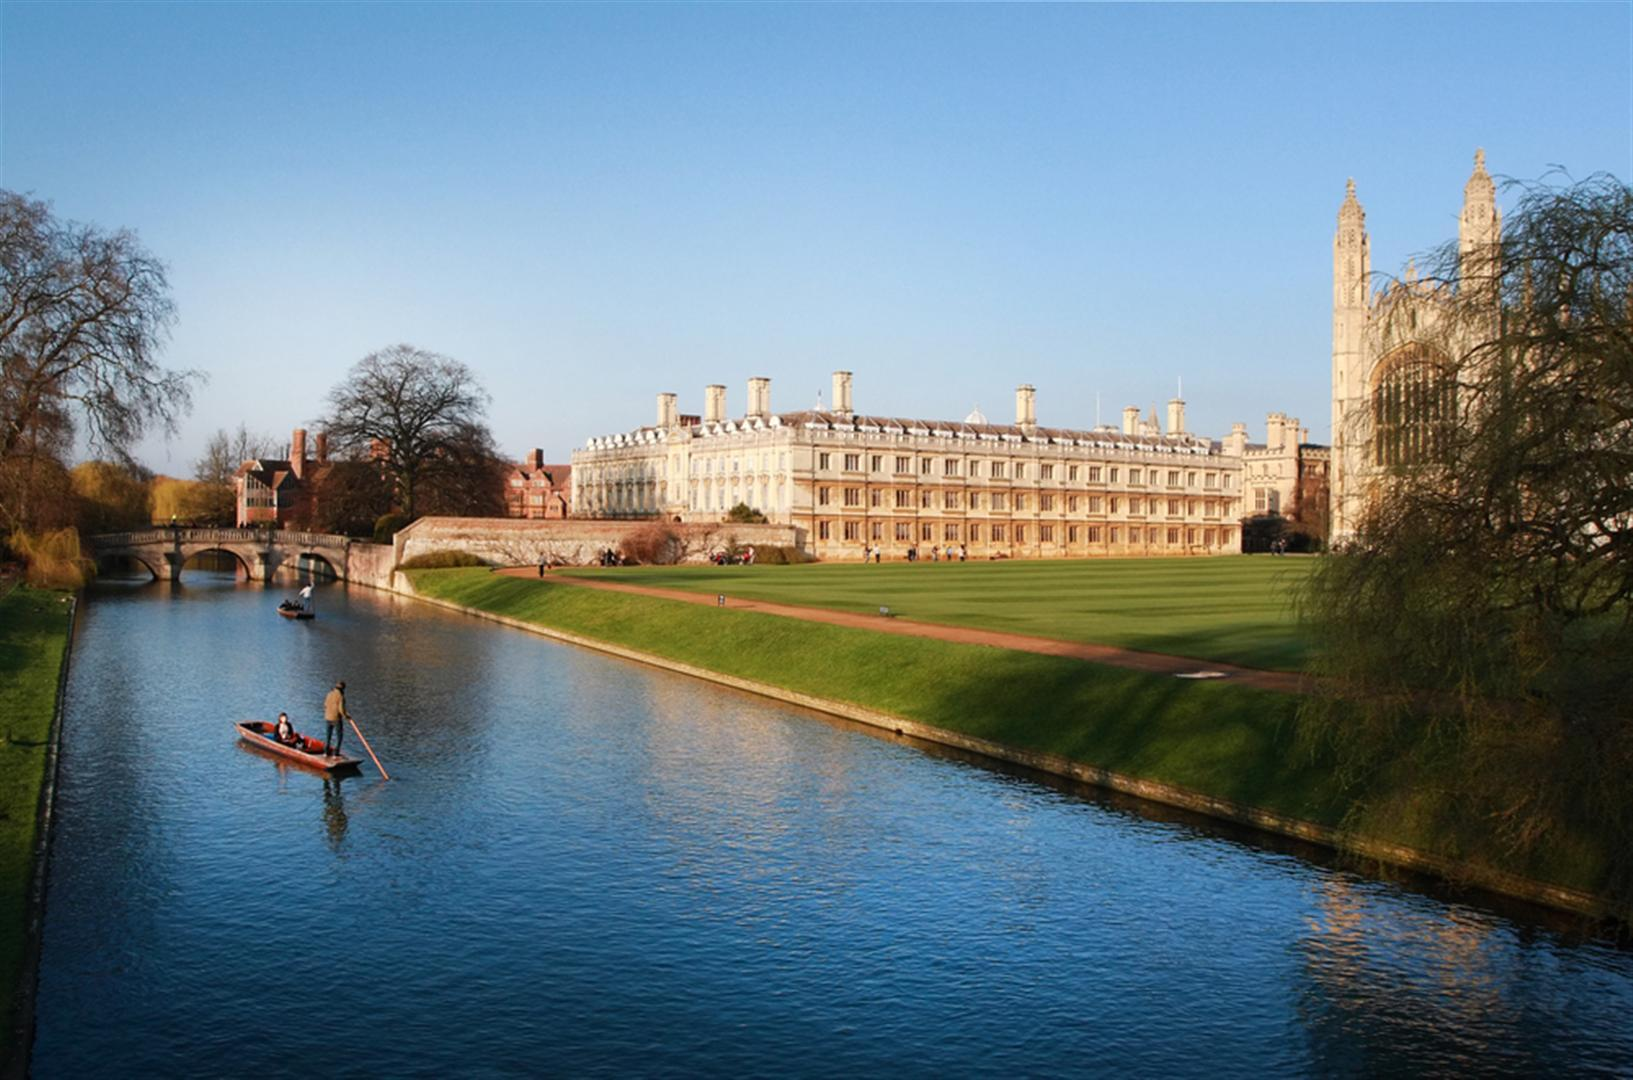 Nice City Desktop Backgrounds: Cambridge HDQ Cover #988829 |.Ssoflx